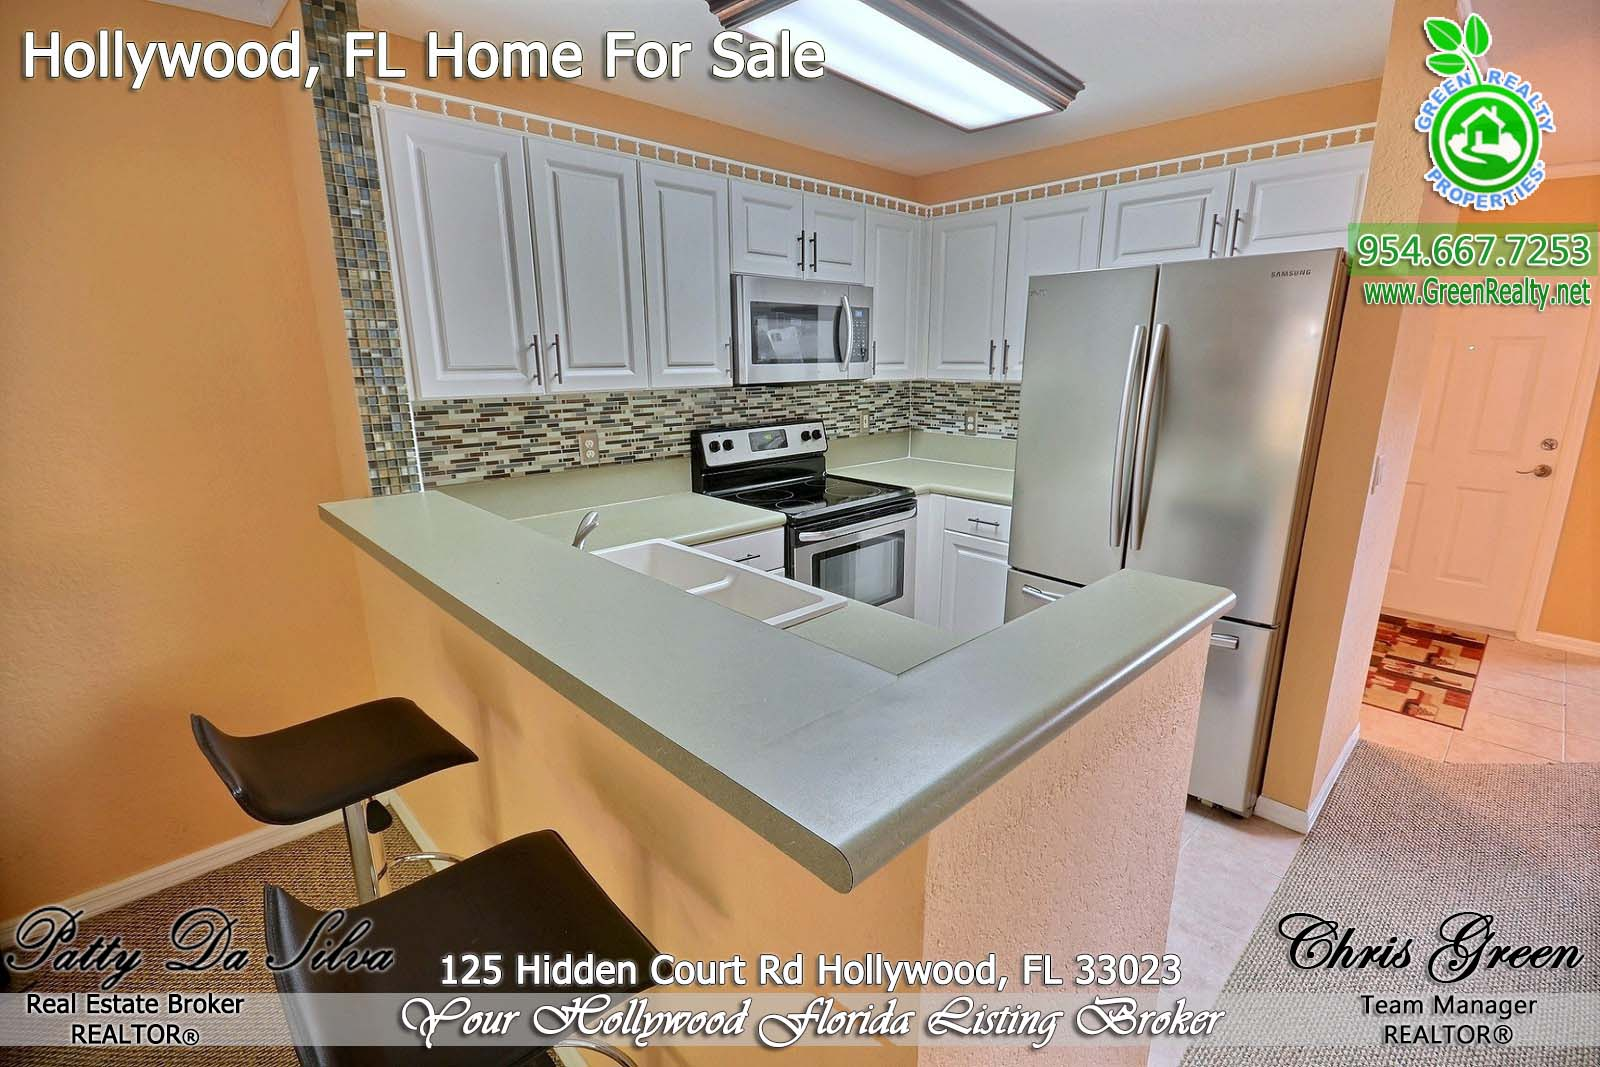 5 Hollywood Florida Homes For Sale (2)